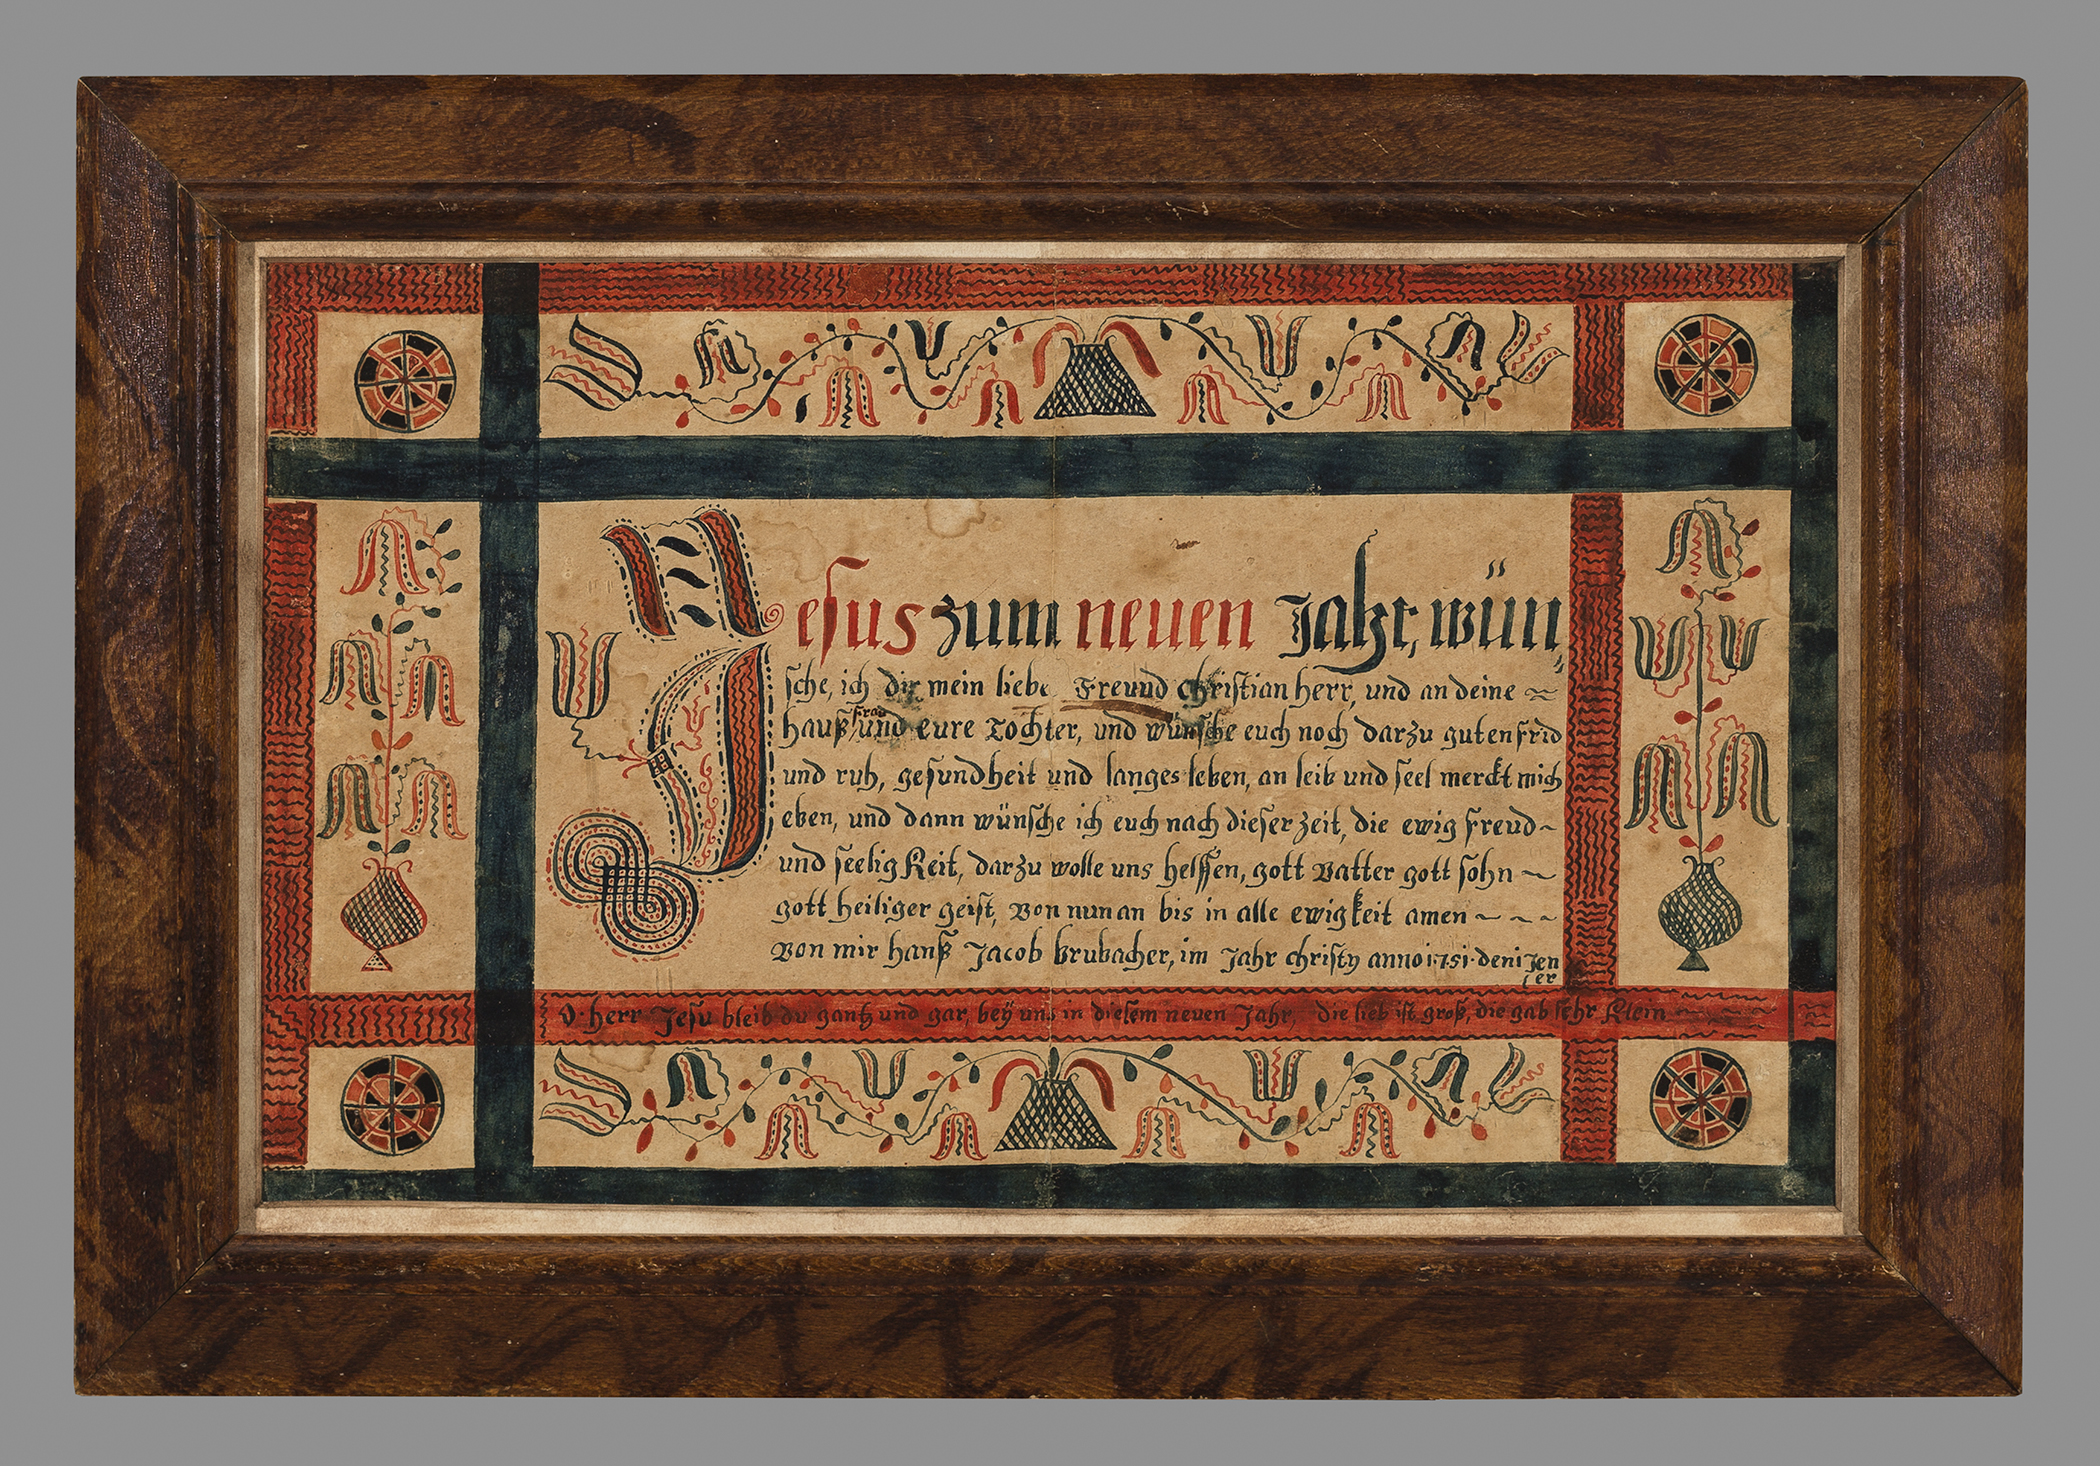 1952.0102 A, B Fraktur and Frame, view 1